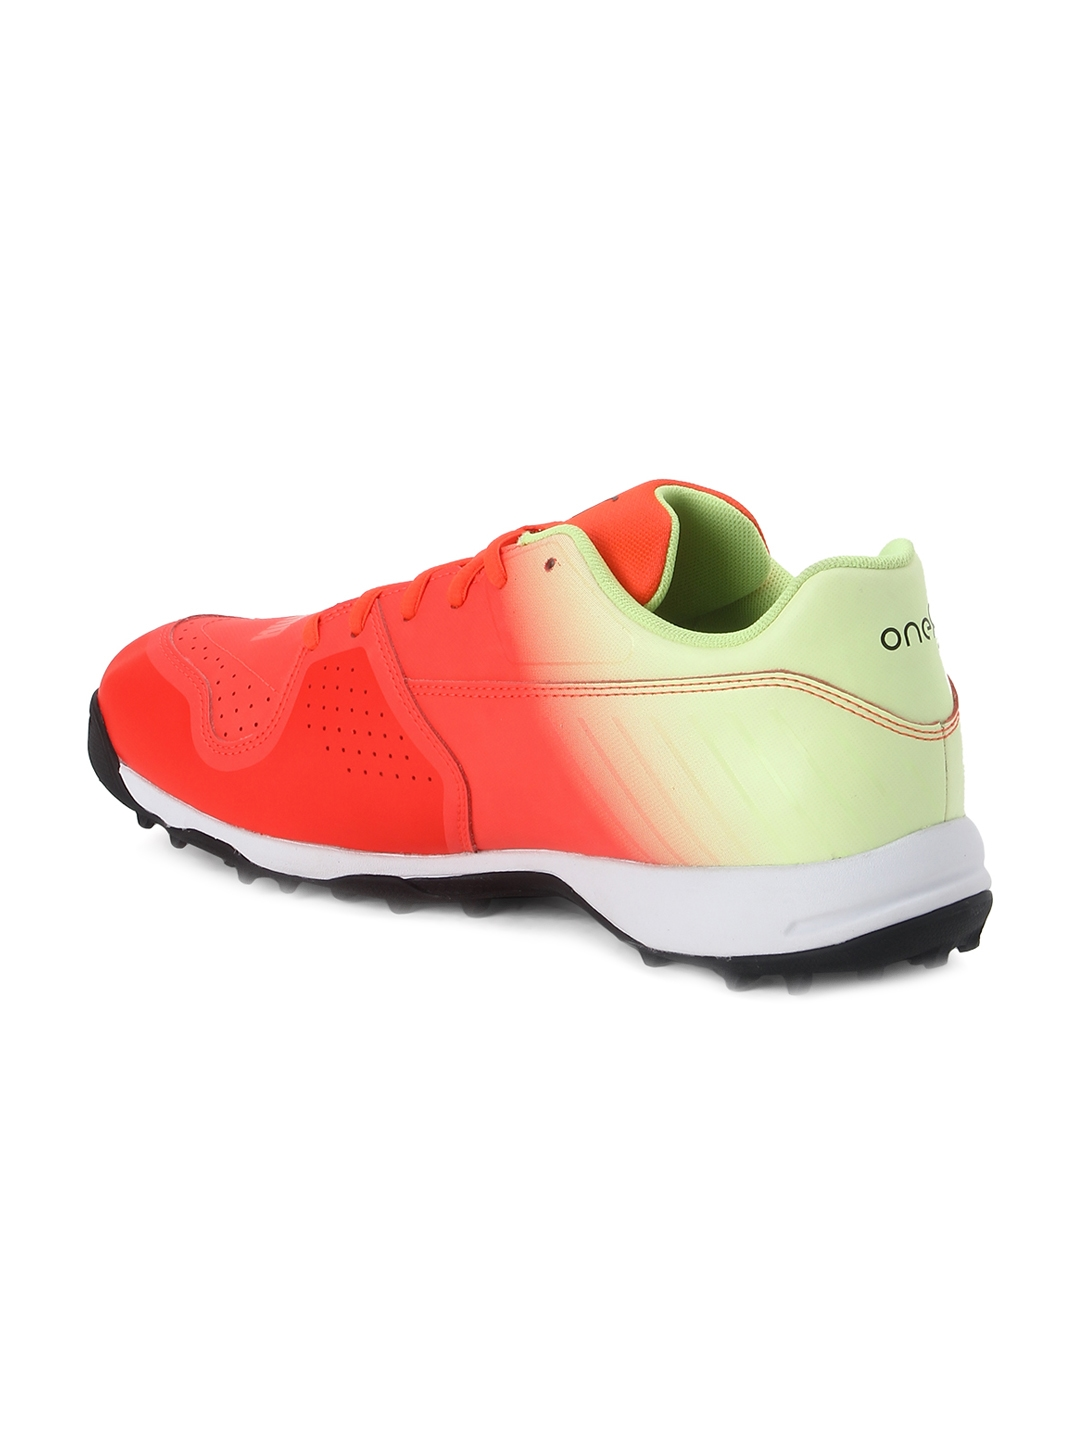 b627474aae9e94 Buy One8 X PUMA Men Red Cricket Shoes - Sports Shoes for Men 4714271 ...